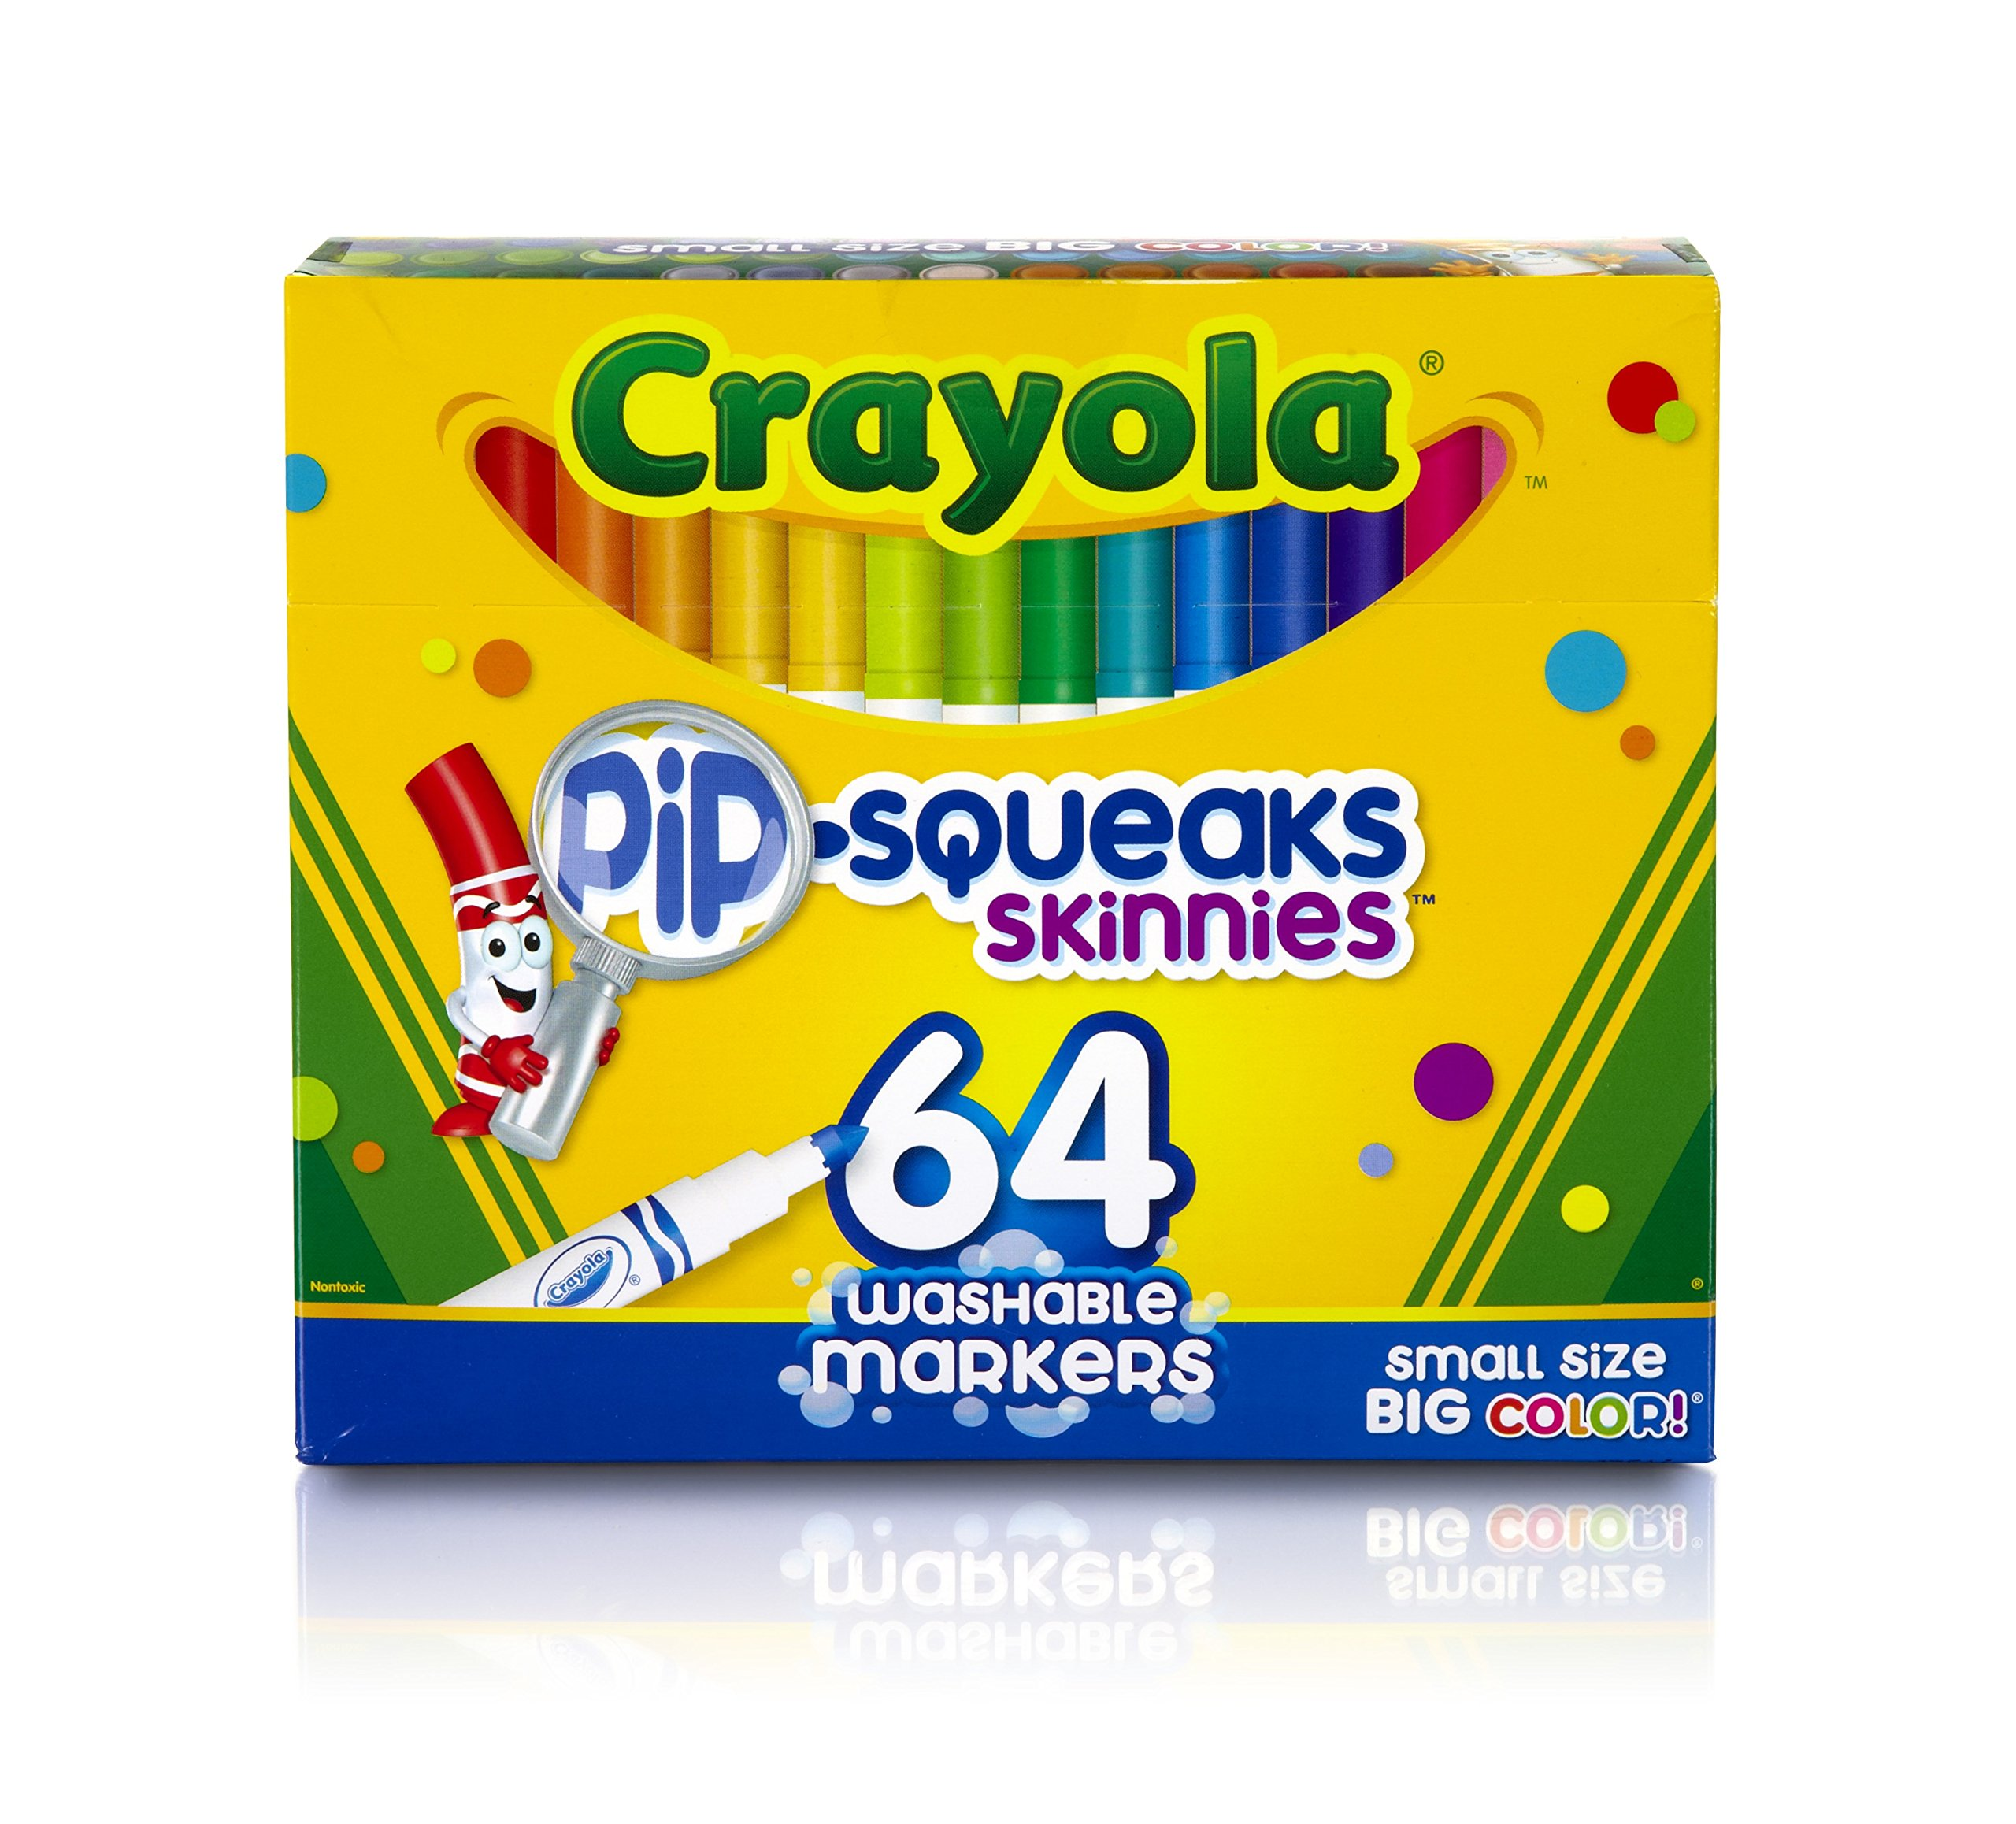 Crayola Pip-Squeaks Skinnies Washable Markers, 64 count, Great for Home or School, Perfect Art Tools by Crayola